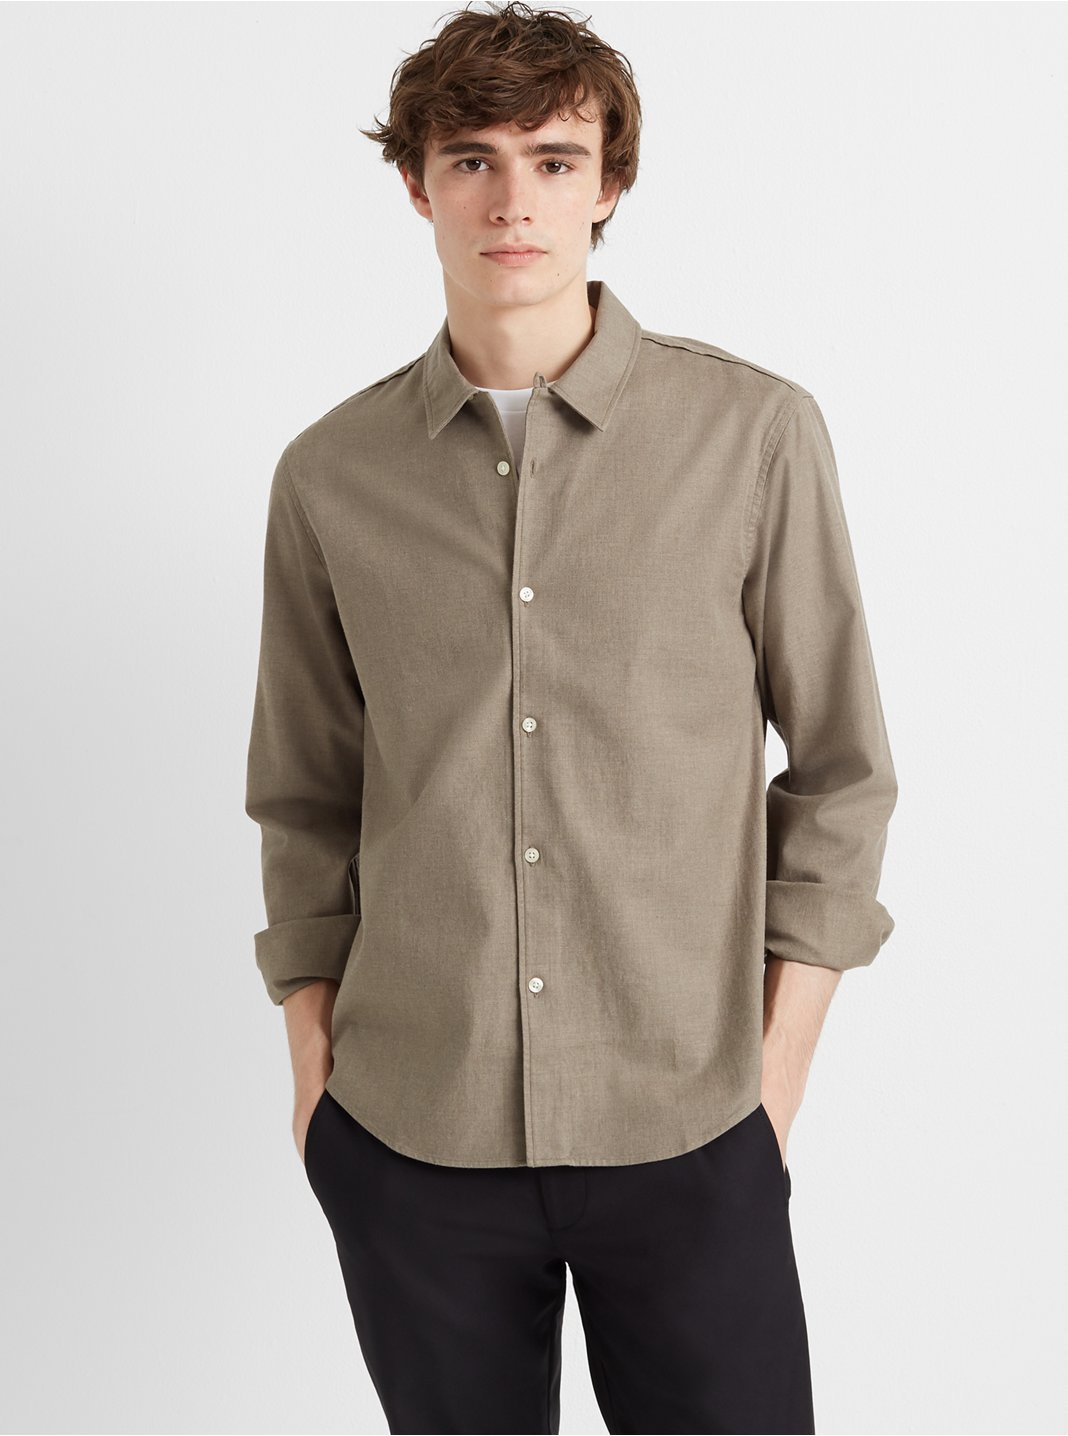 Loop Collar Texture Shirt